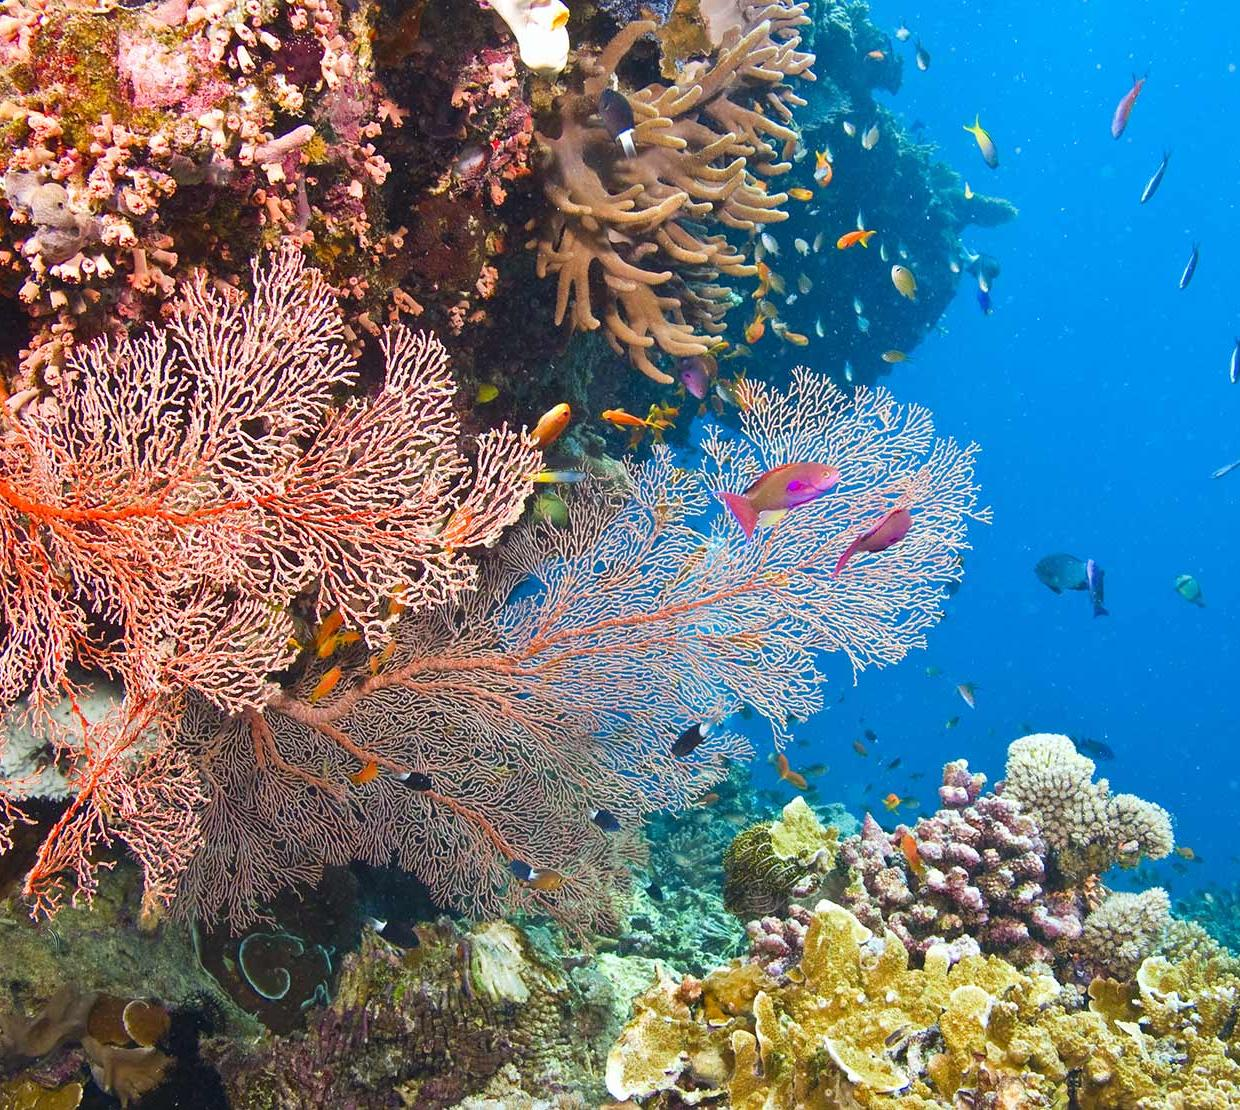 fish and coral in their underwater ecosystem